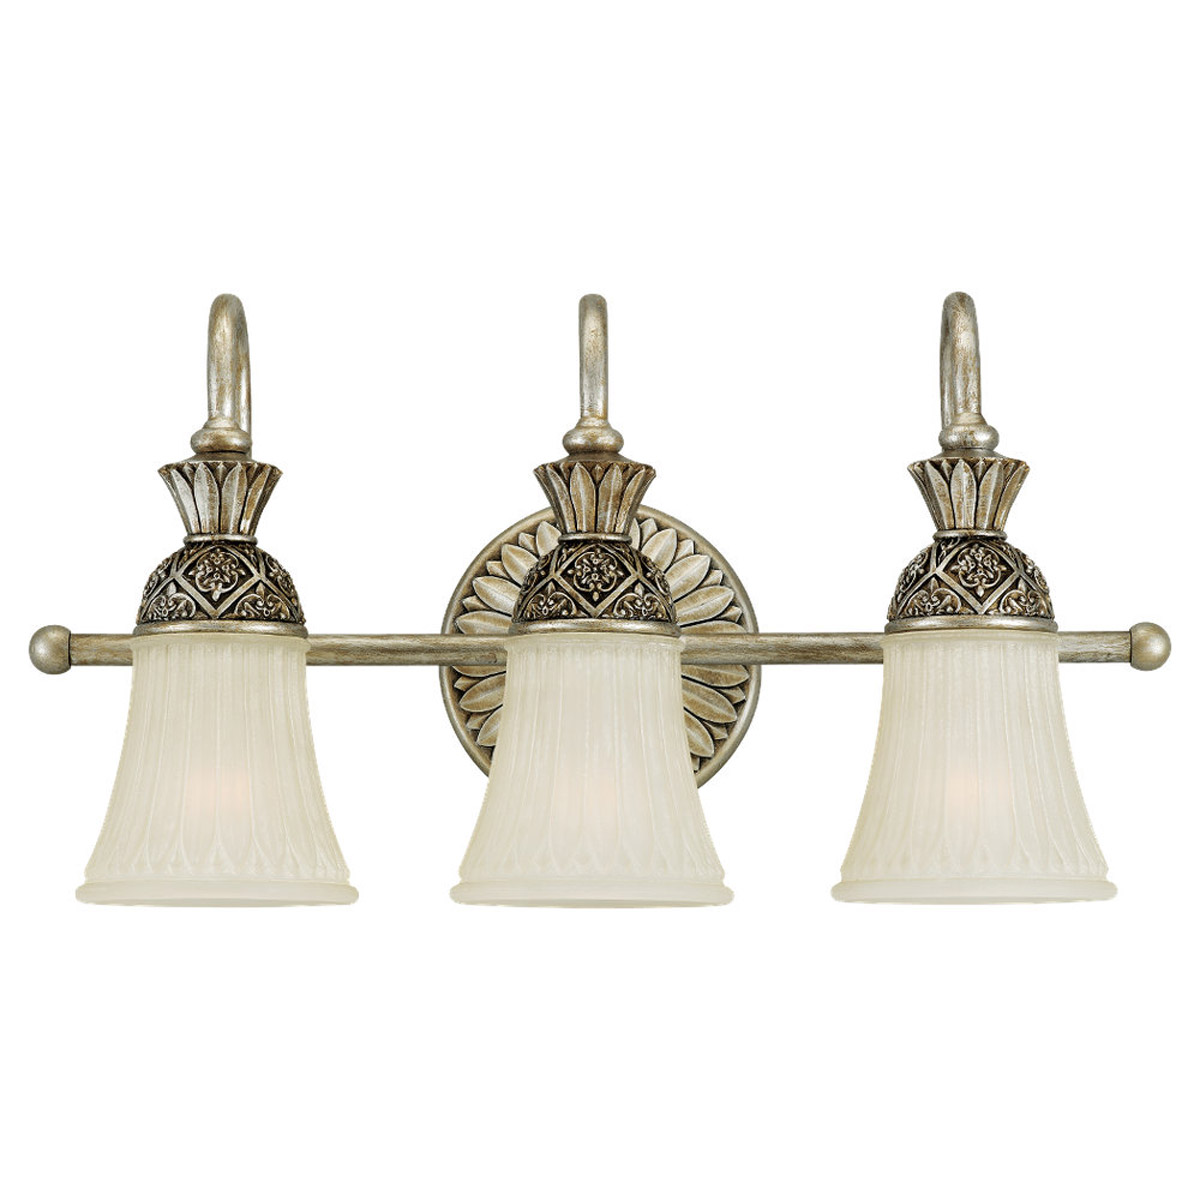 Sea Gull Lighting Highlands 3 Light Bath Vanity in Palladium 47252-824 photo